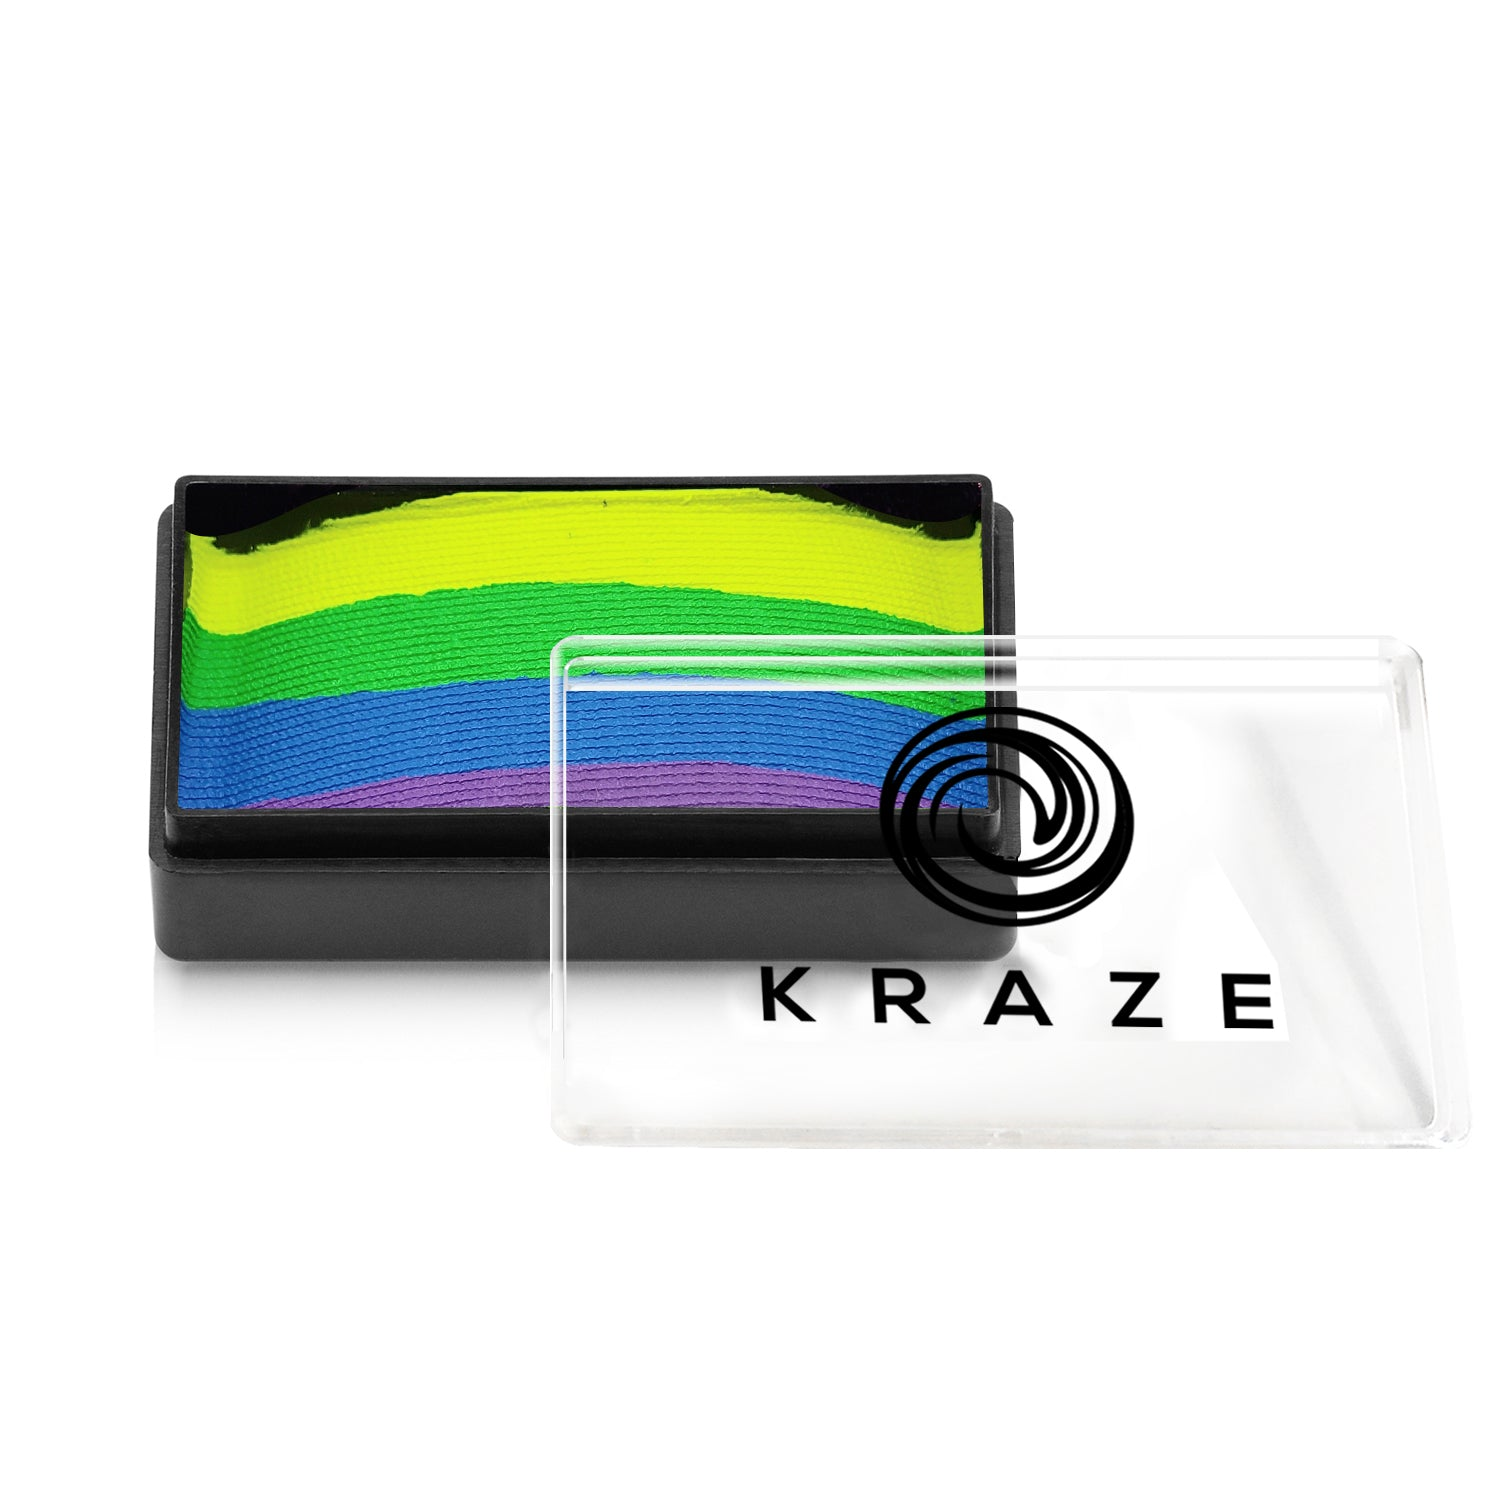 Kraze Dome Stroke - Thrill (25 gm)